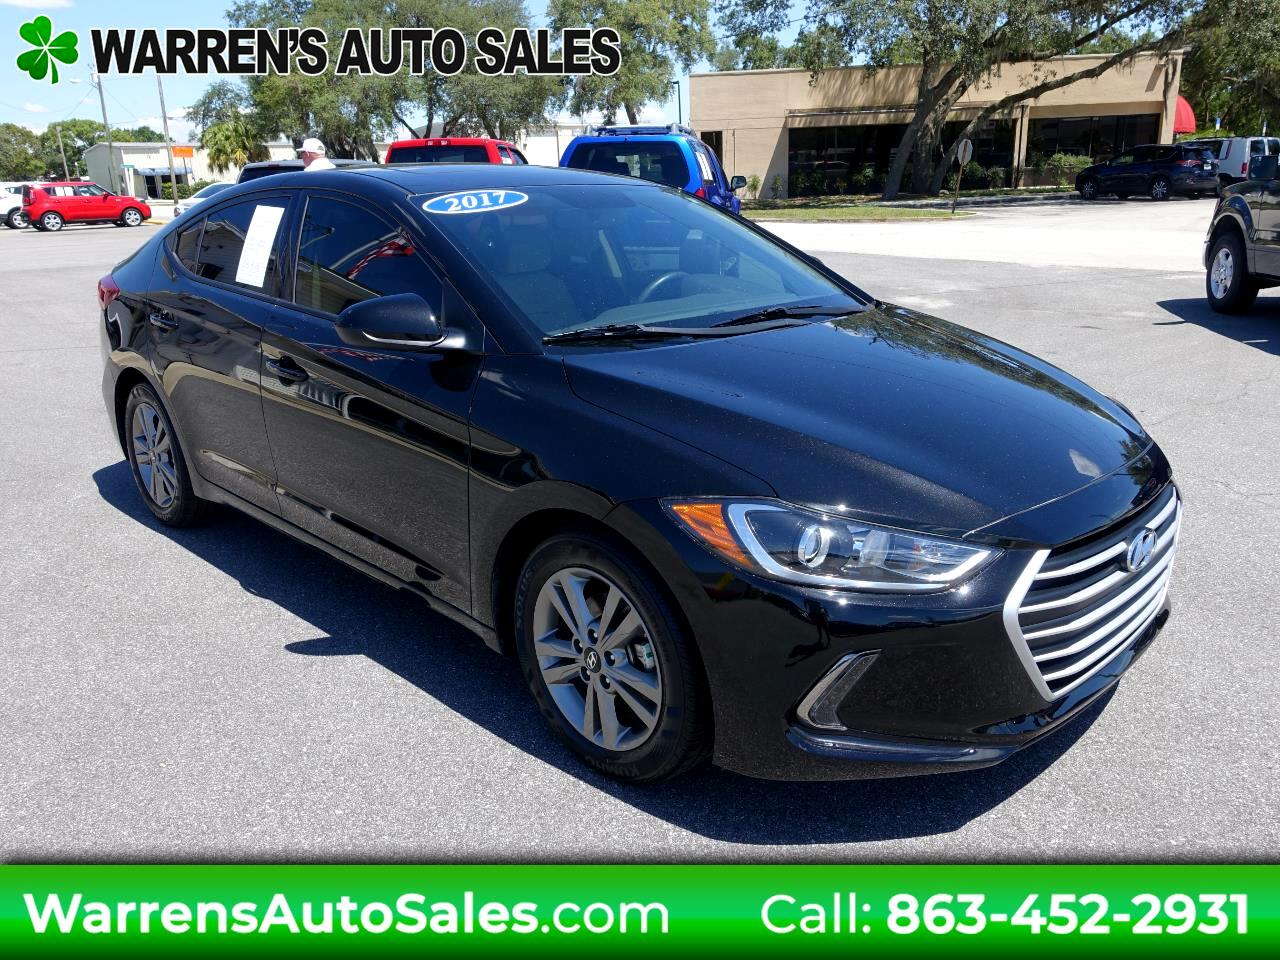 2017 Hyundai Elantra SE Value Package